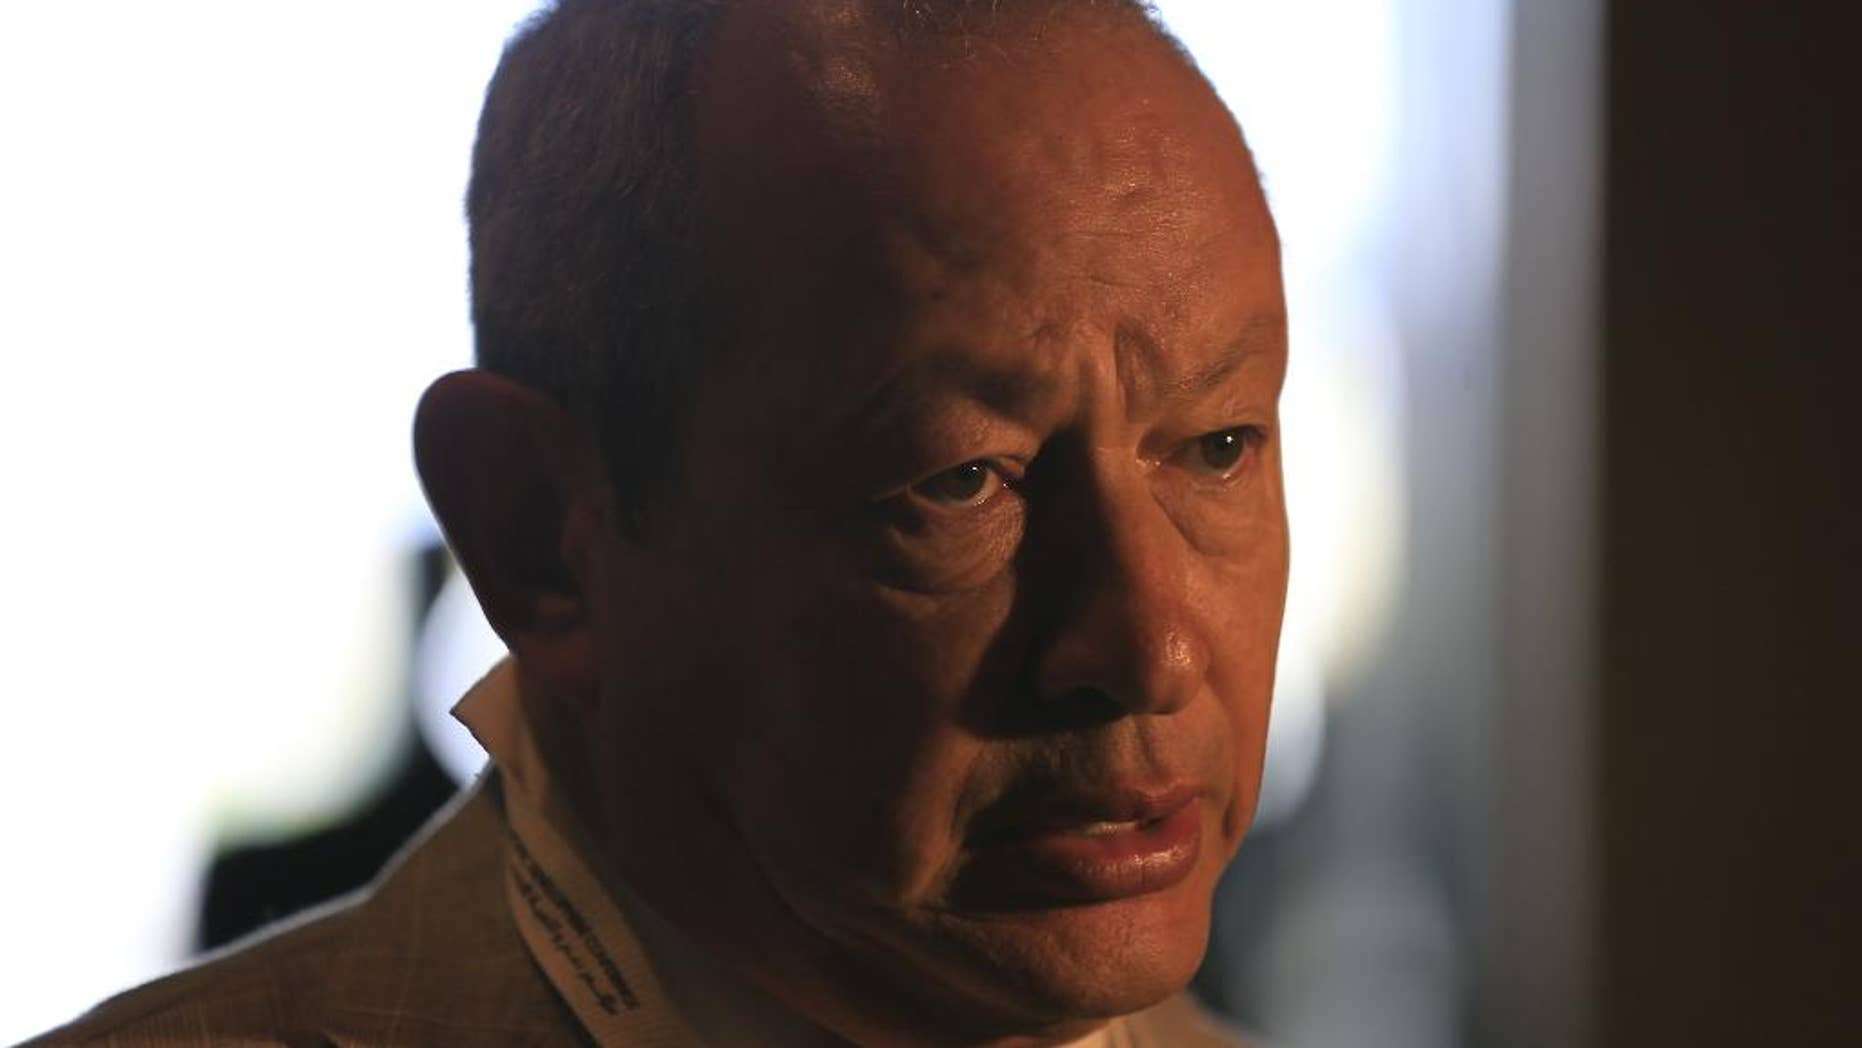 Egyptian billionaire businessman Naguib Sawiris speaks to journalists prior to the opening of a major economic conference seeking billions of dollars in investment, in Sharm el-Sheikh, Egypt, Friday, March 13, 2015. Egyptian President Abdel-Fattah el-Sissi approved a package of amendments to investment laws on Thursday, aimed at enticing foreign investors on the eve of the conference that will bring together hundreds of business executives and foreign leaders. (AP Photo/Hassan Ammar)